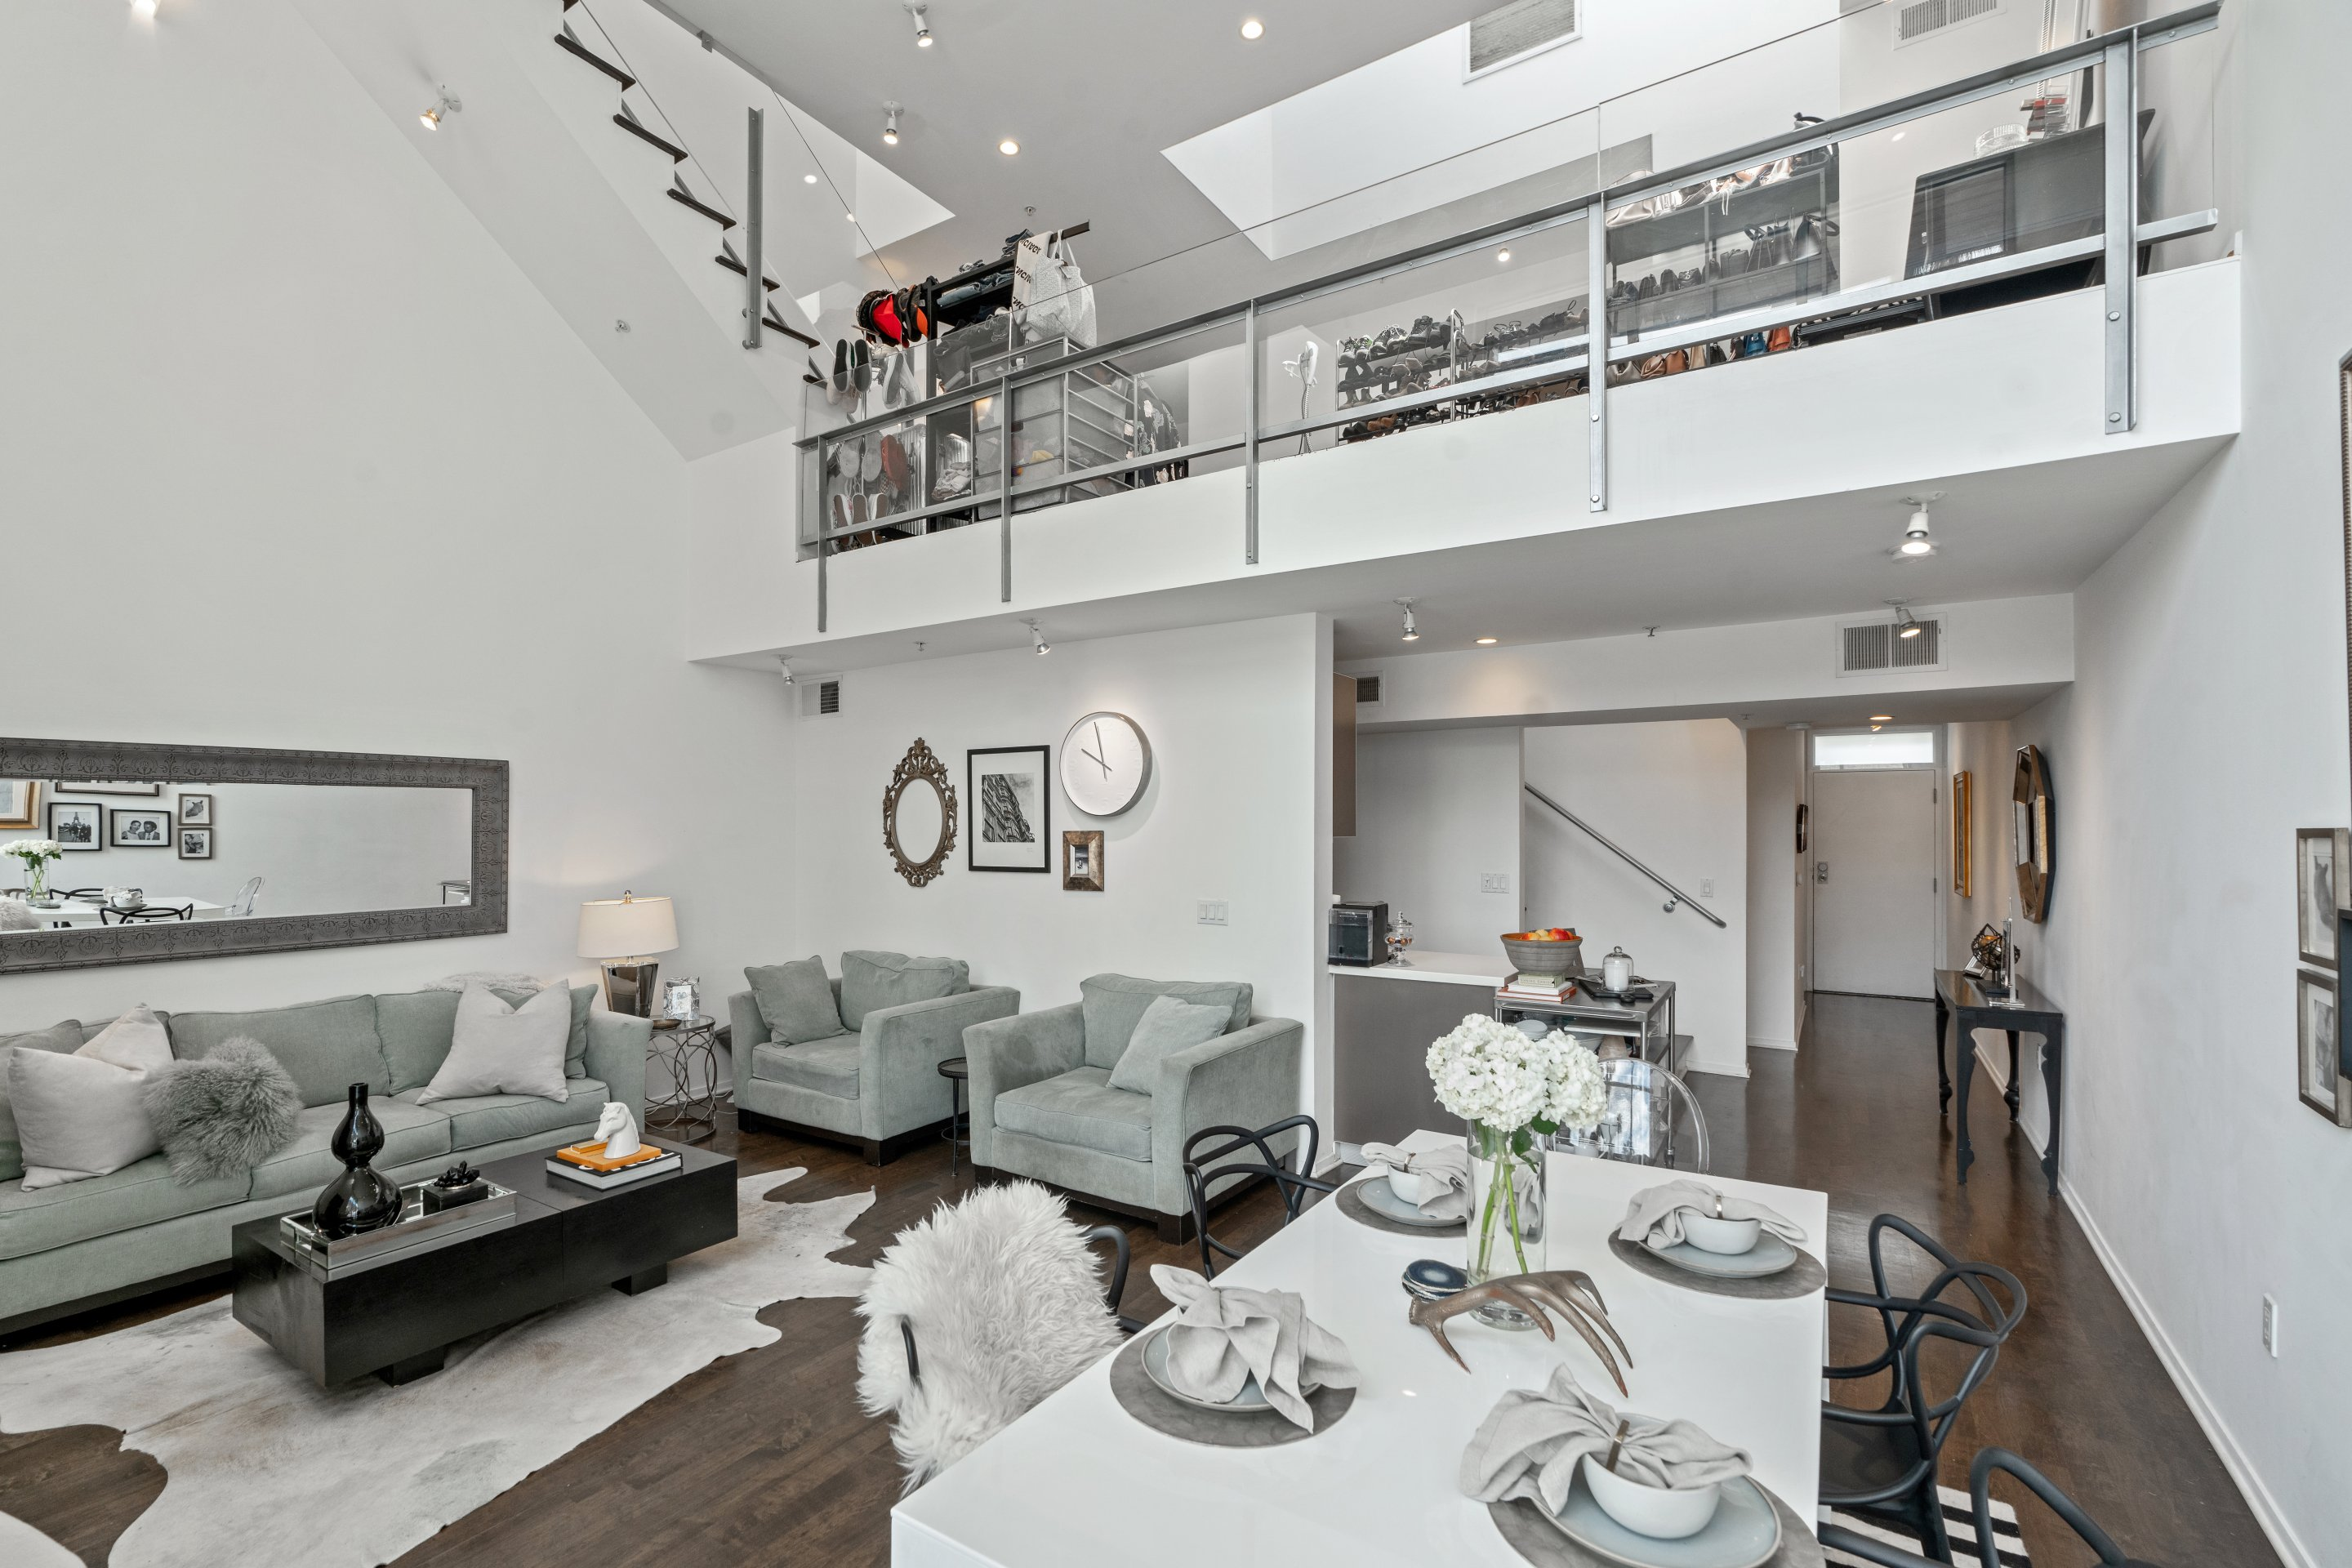 NEW LEASE LISTING: 2 Beds + 2 Baths Loft-Style Condo Steps to Paramount Studios